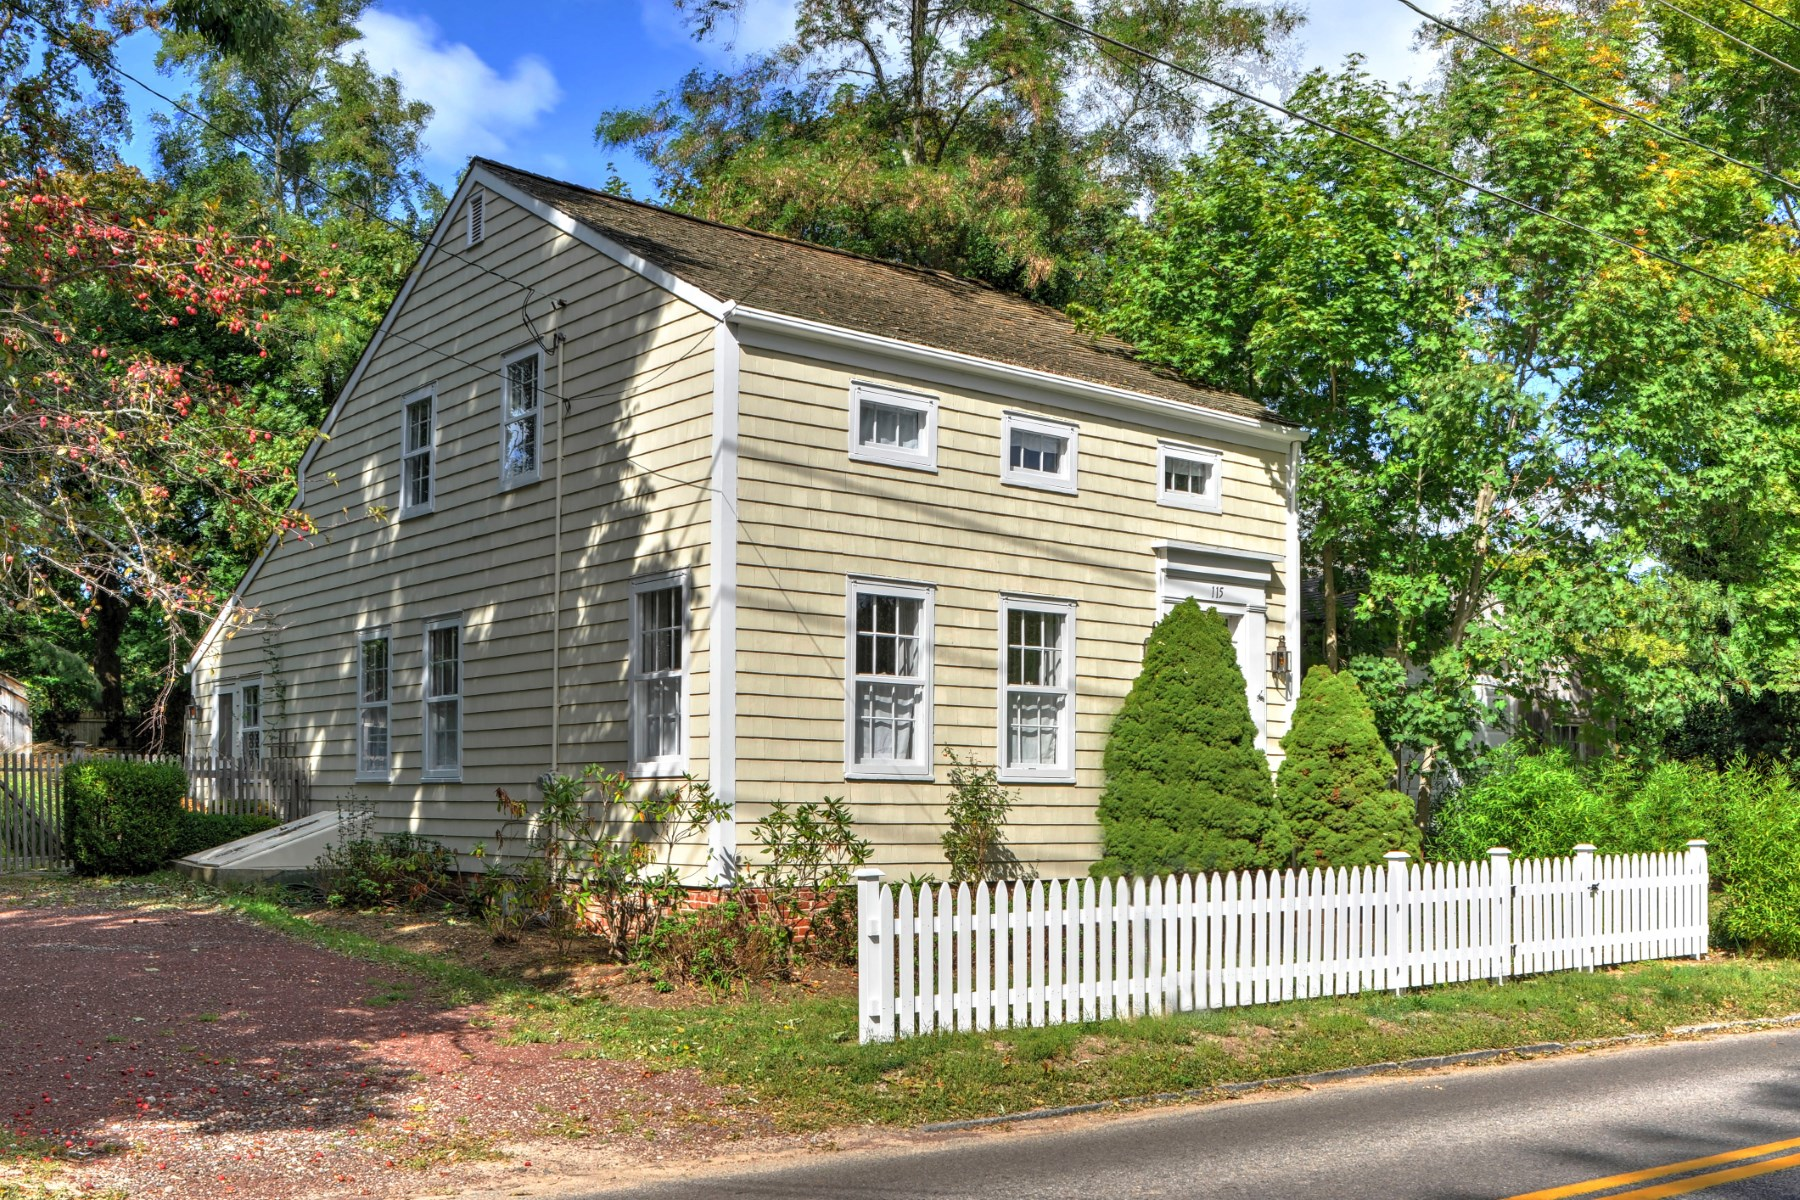 Single Family Home for Sale at Sag Harbor Village Antique 115 Jermain Avenue Sag Harbor, New York, 11963 United States